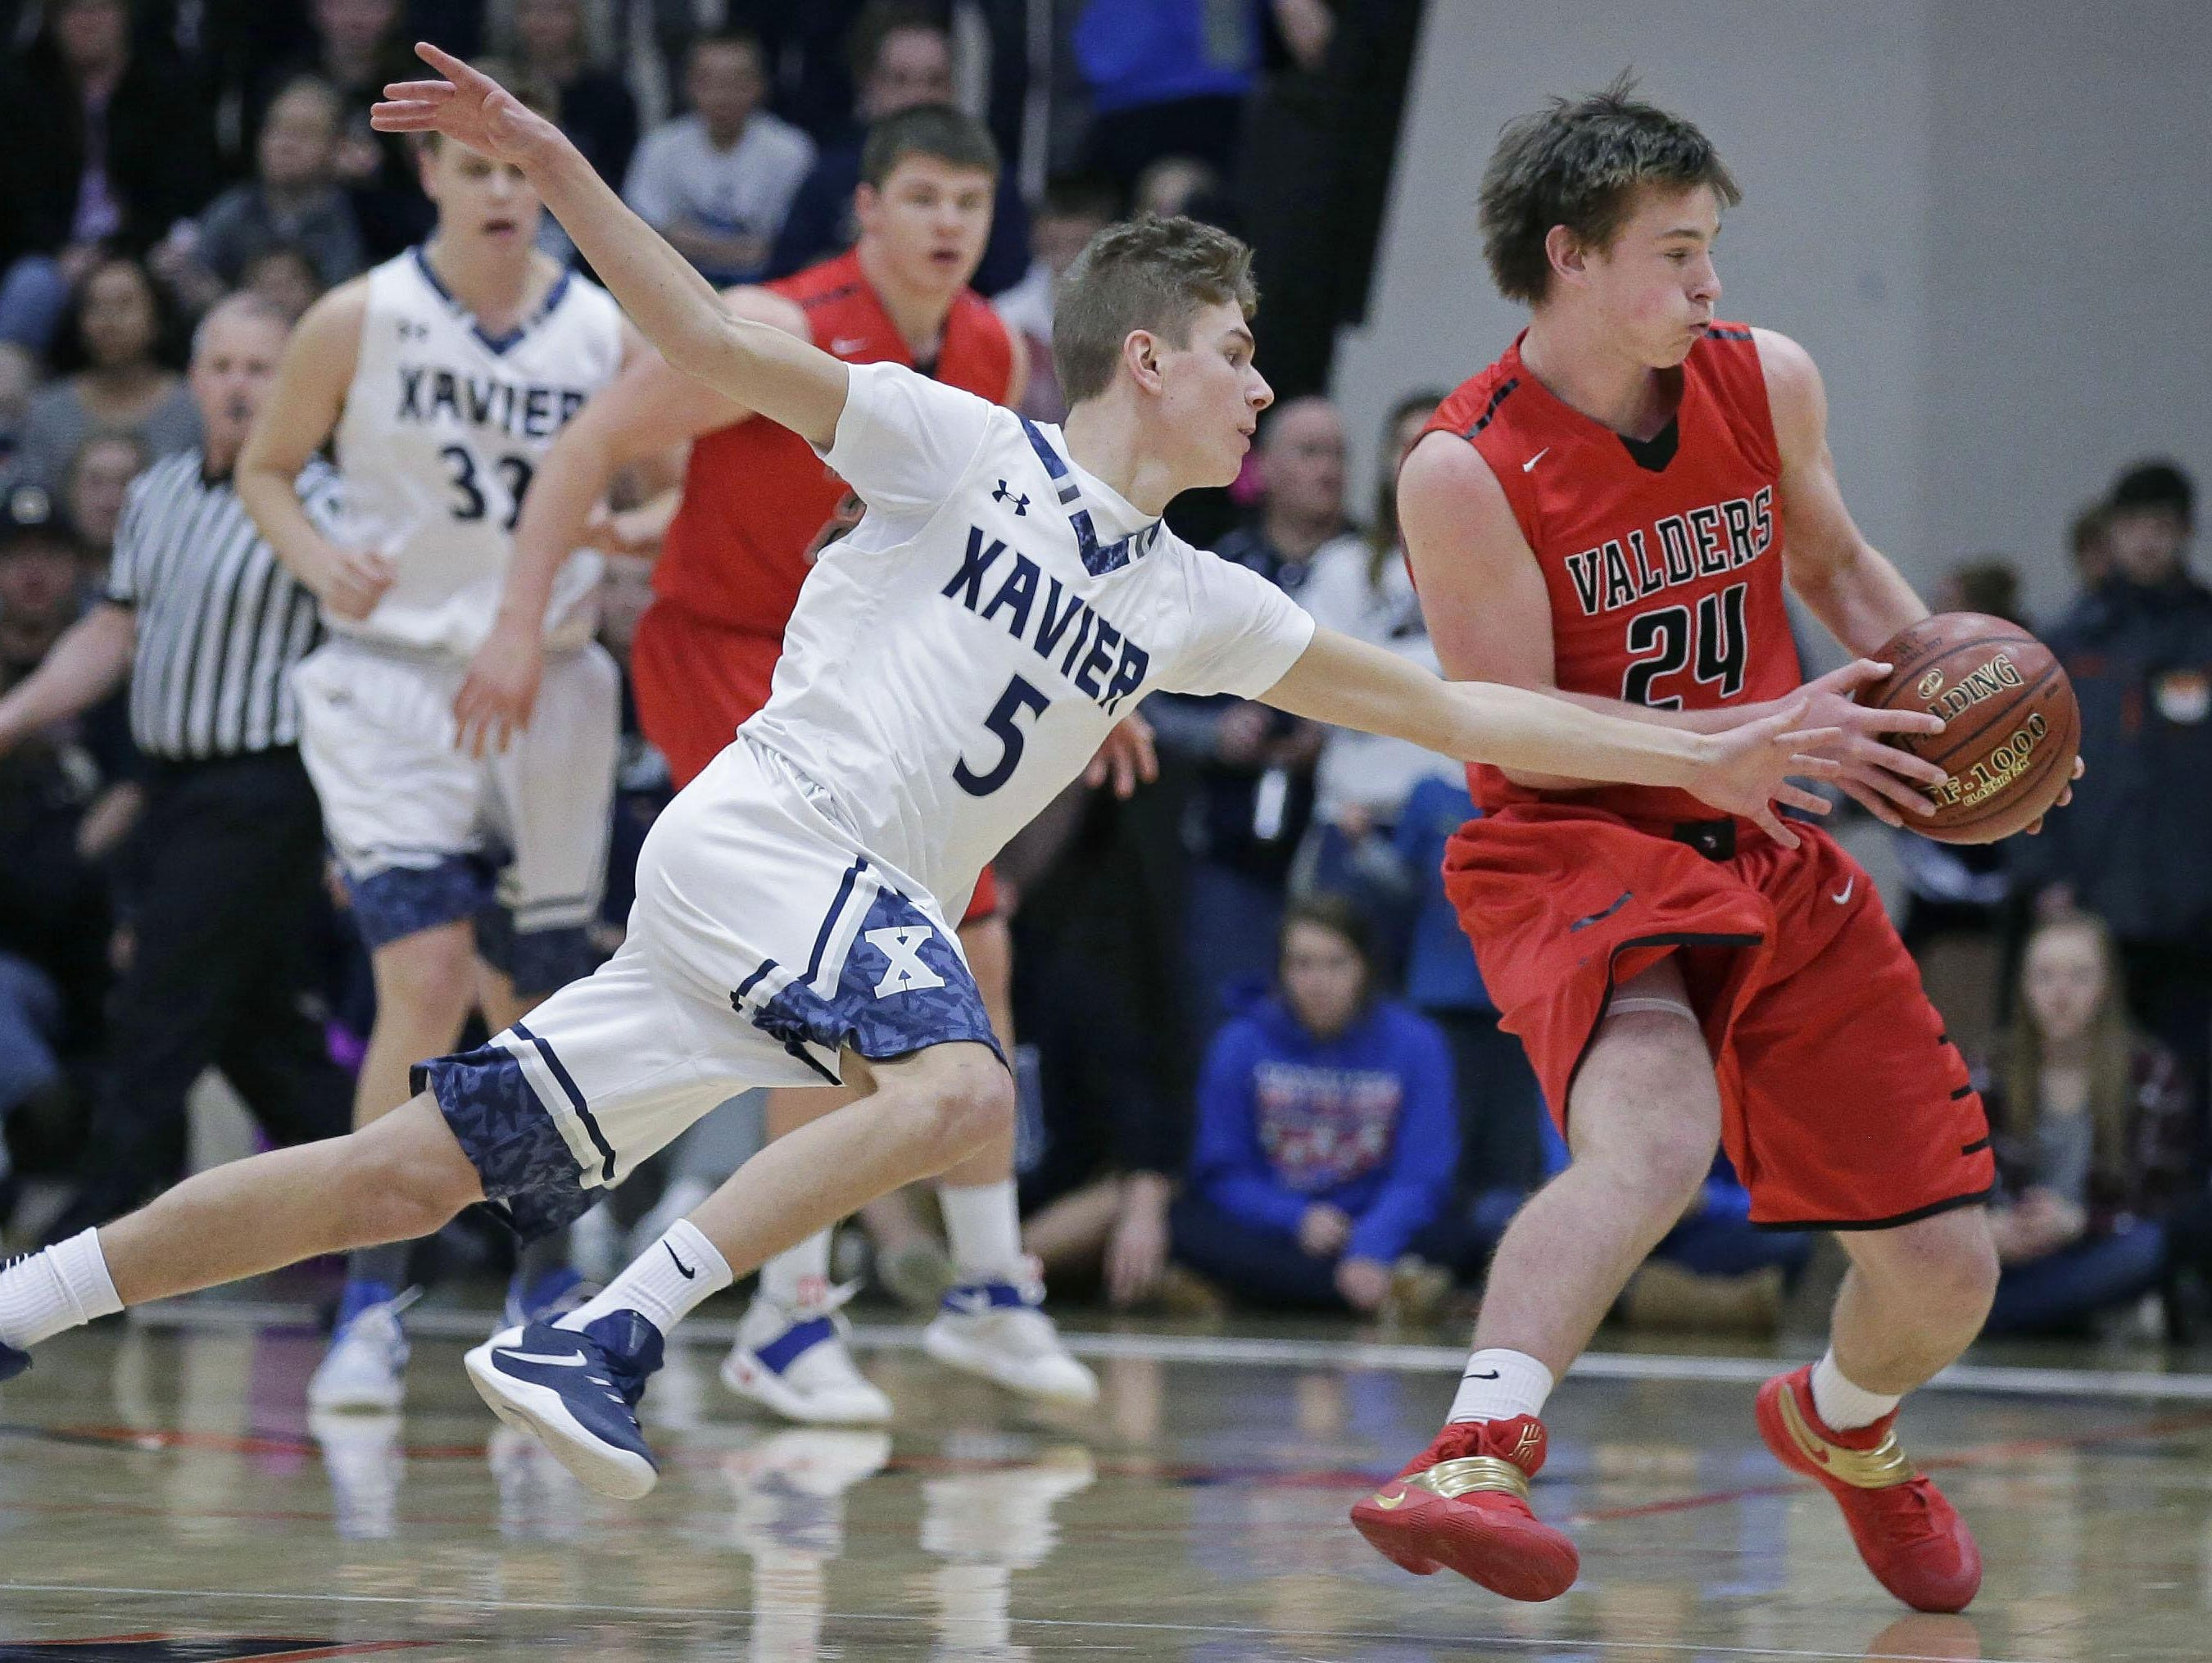 Sam Ferris, left, of Xavier reaches for the ball held by Fletcher Dallas of Valders during a WIAA Division 3 sectional championship game Saturday night in Kaukauna.